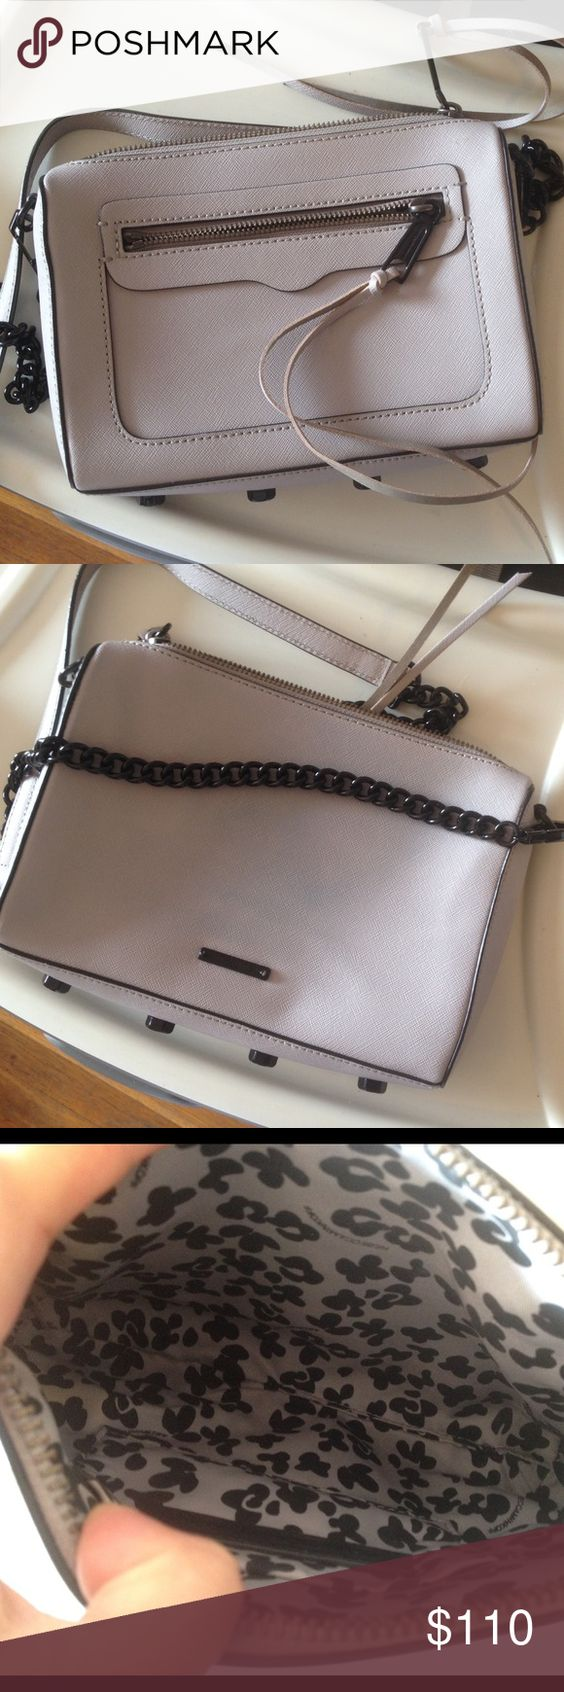 Rebecca Minkoff Avery Crossbody Bag Super cute Crossbody bag in good gently used condition. One side has some denim transfer - please review pics. Open to offers, but no trades! Tory Burch Bags Crossbody Bags